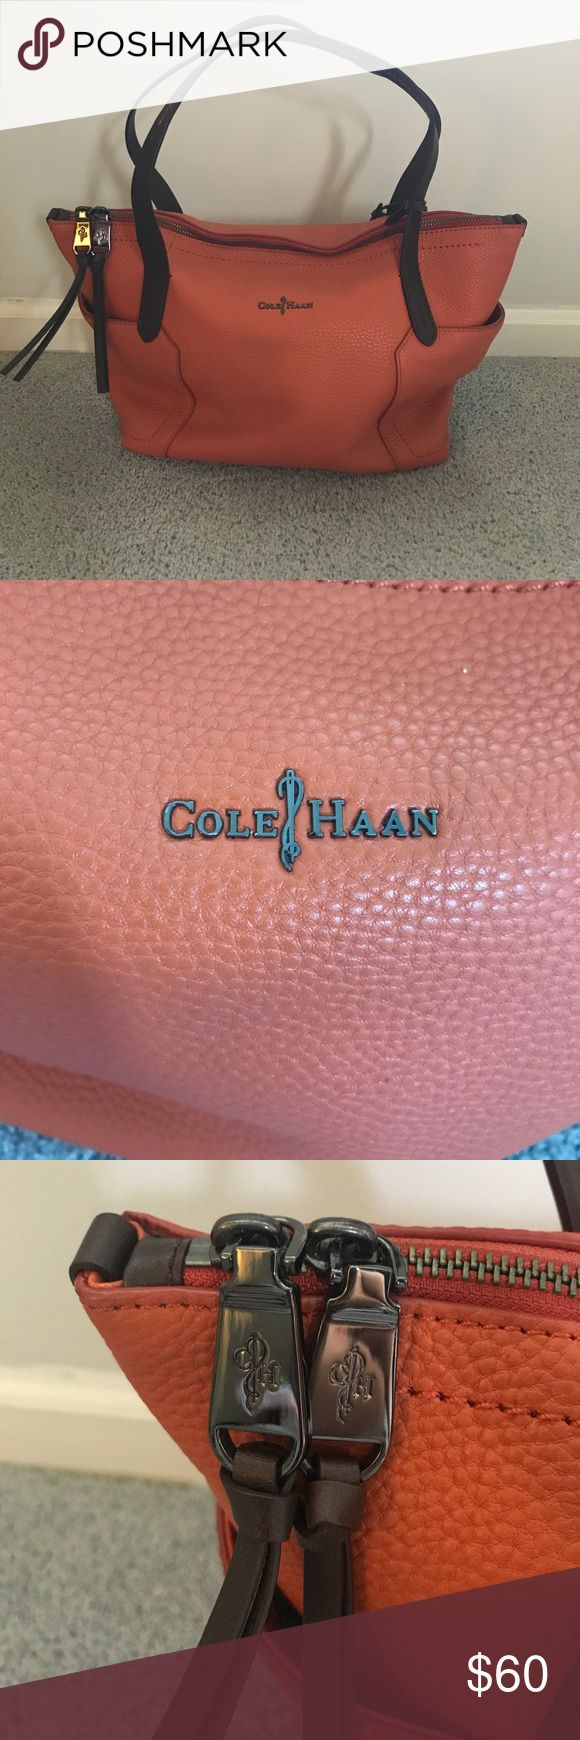 Cole Haan Orange Purse Come Haan Orange Purse! Like new, never been used! Beautiful detailing and soft leather. Offers welcome :) Cole Haan Bags